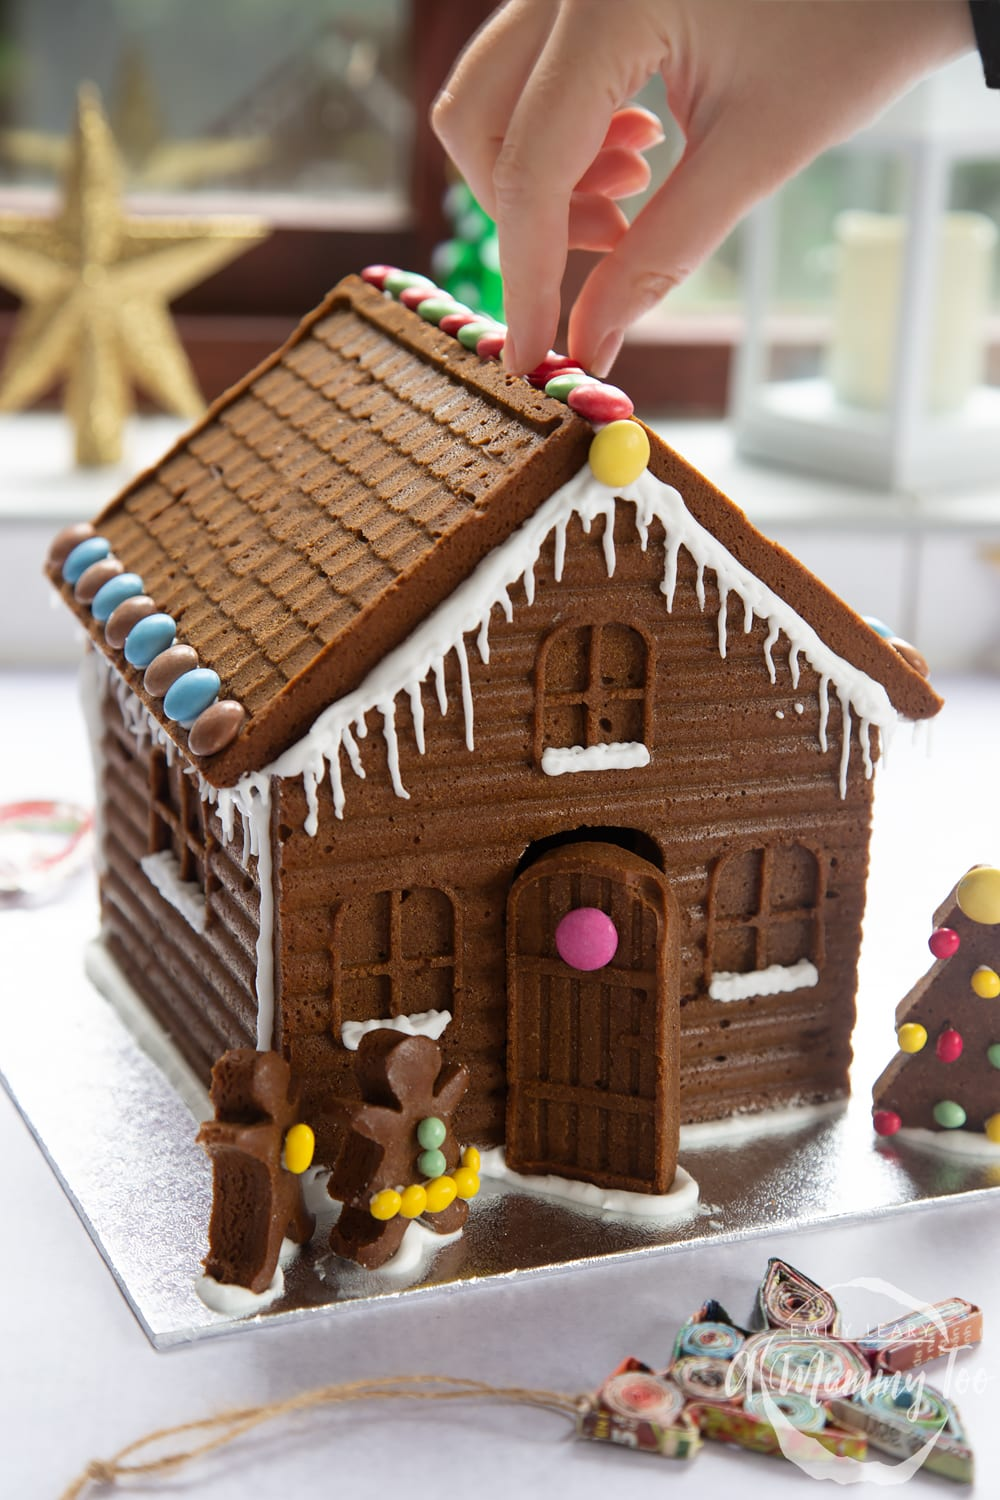 A detailed gingerbread house on a silver board. A hand is reaching in, positioning chocolate beans on the roof of the house.